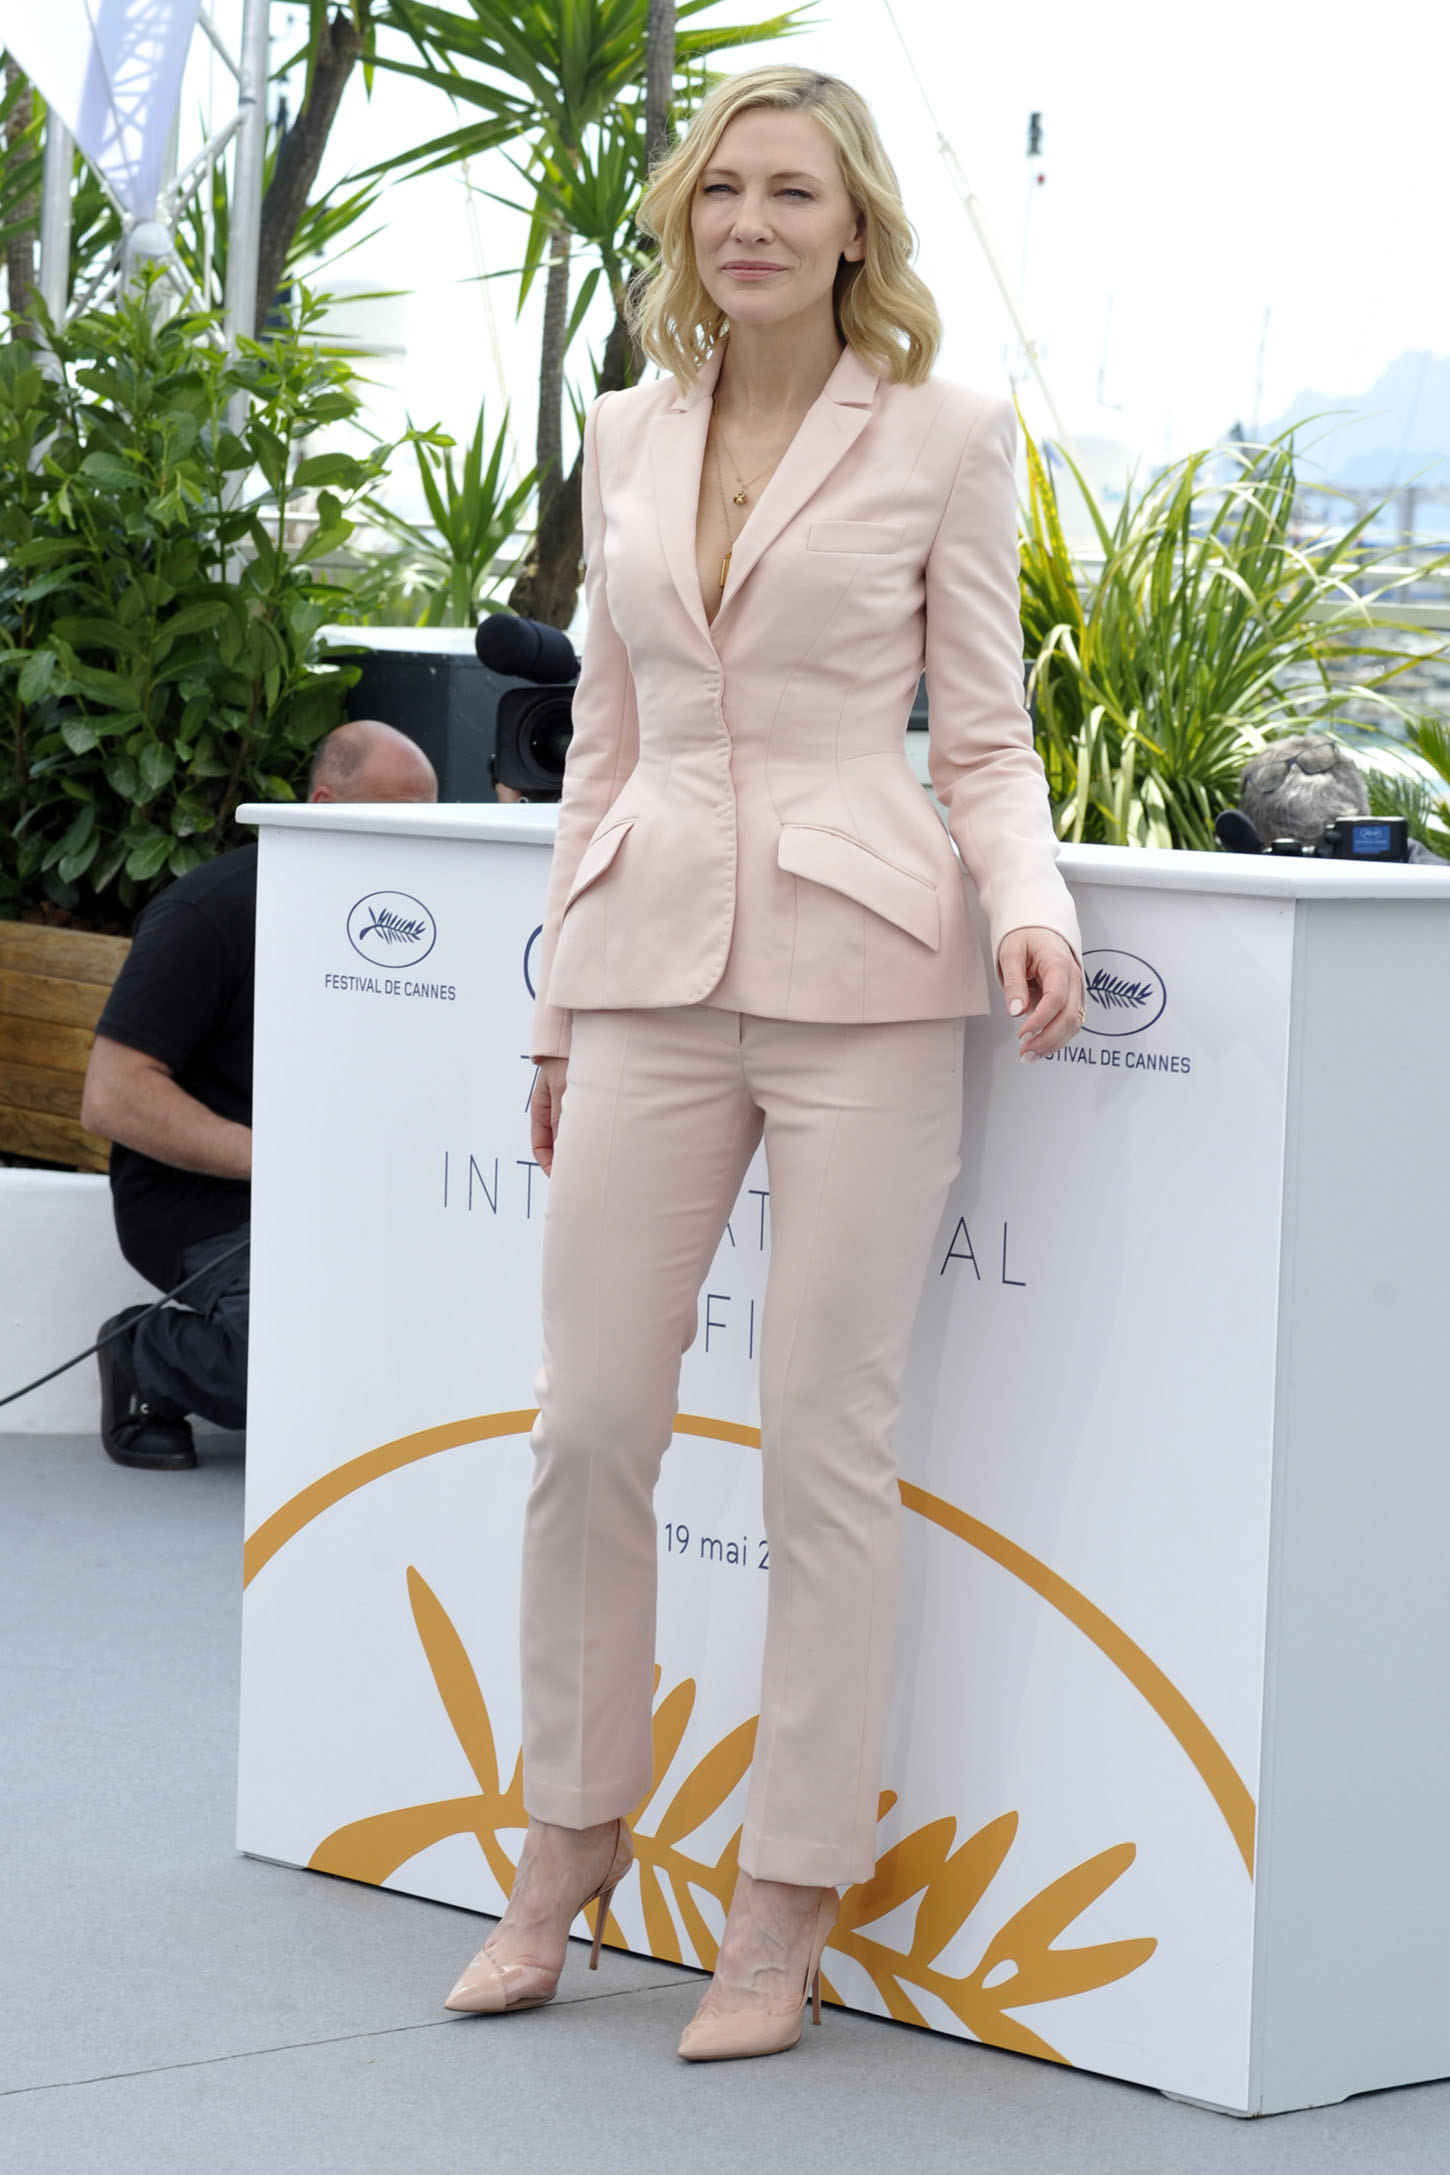 Jury members Khadja Nin, Lea Seydoux, Jury head Cate Blanchet, Ava DuVernay and Kristen Stewart attend the Jury photocall during the 71st annual Cannes Film Festival at Palais des Festivals           <P> Pictured: Cate Blanchett <B>Ref: SPL1693681  080518  </B><BR/> Picture by: Gigi Iorio / Splash News<BR/> </P><P> <B>Splash News and Pictures</B><BR/> Los Angeles:310-821-2666<BR/> New York:212-619-2666<BR/> London:870-934-2666<BR/> <span id=